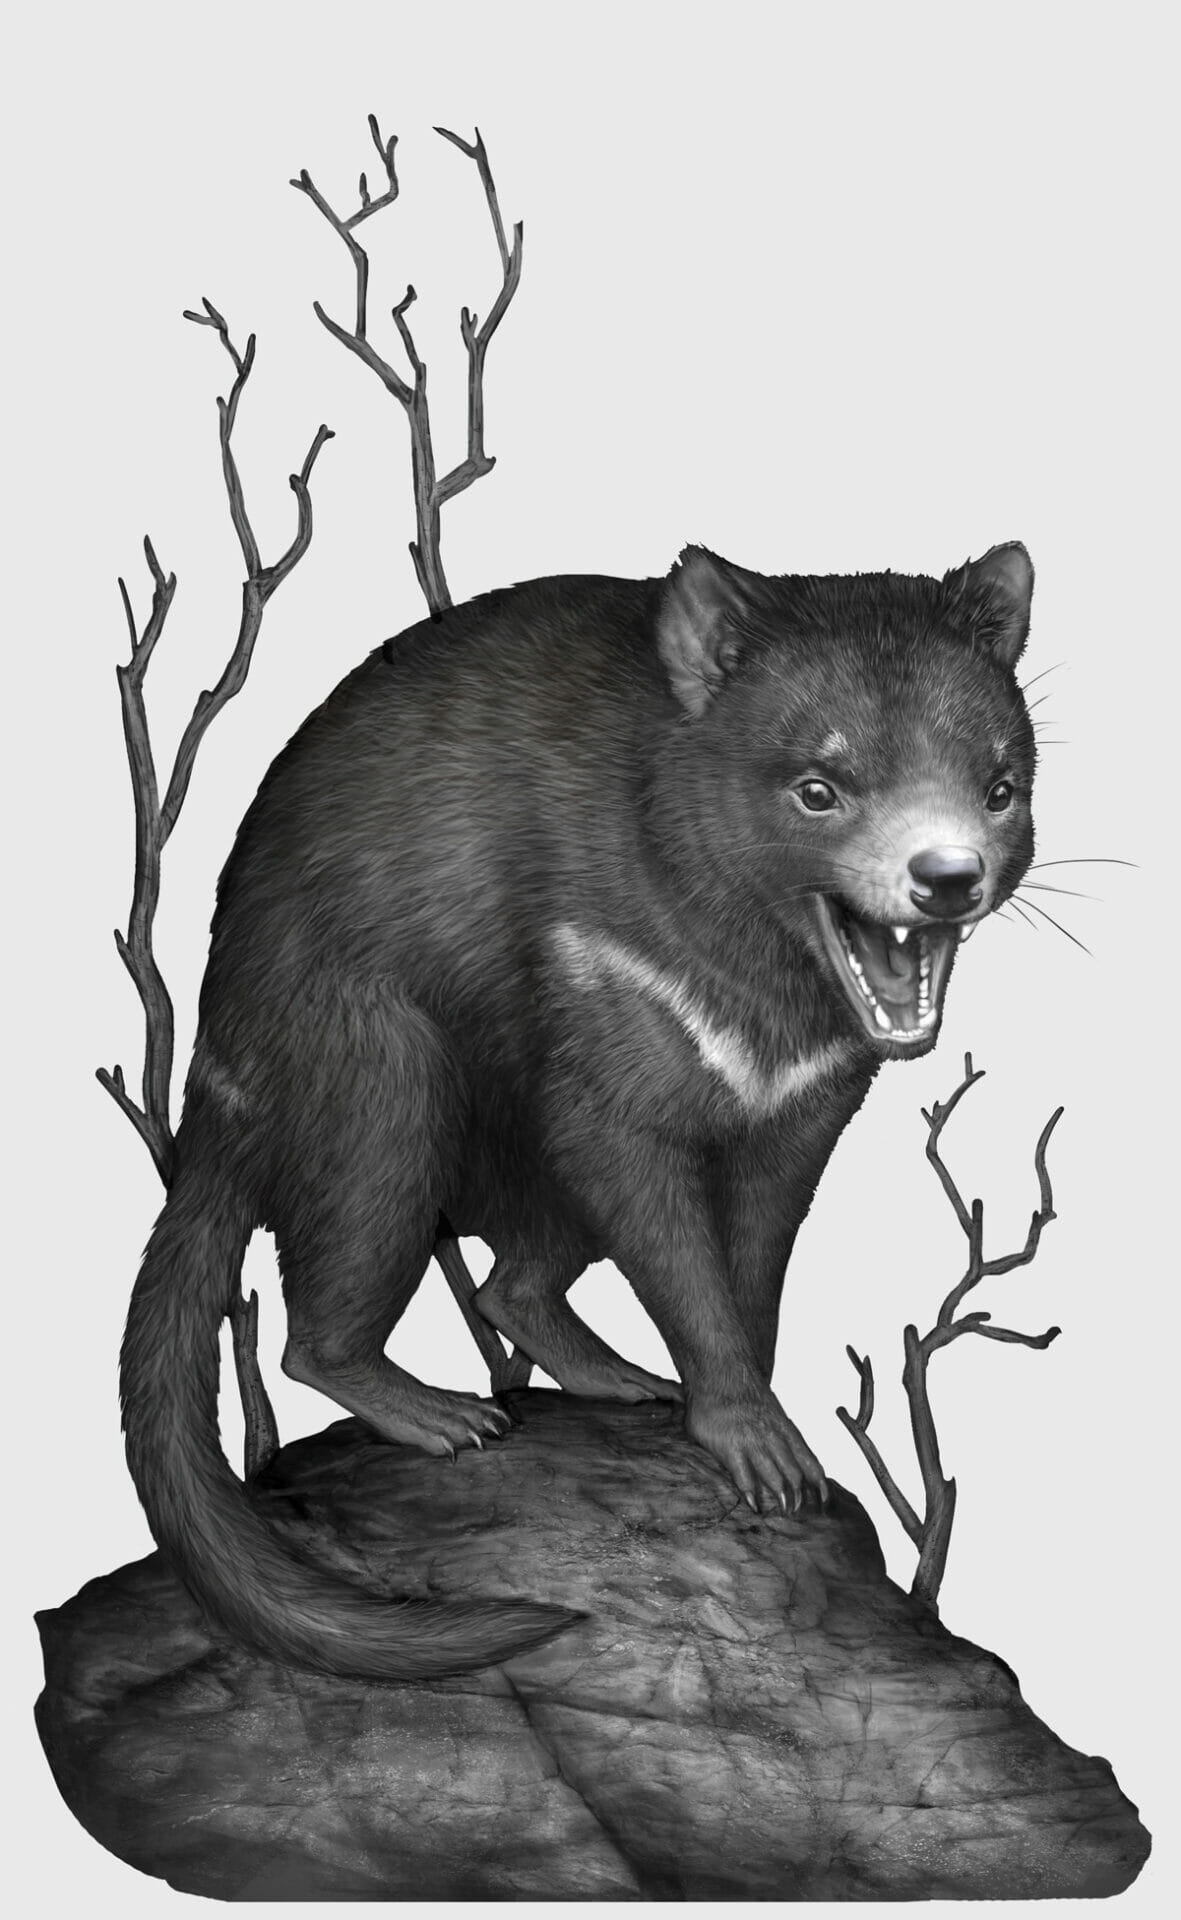 Tasmanian devil illustration